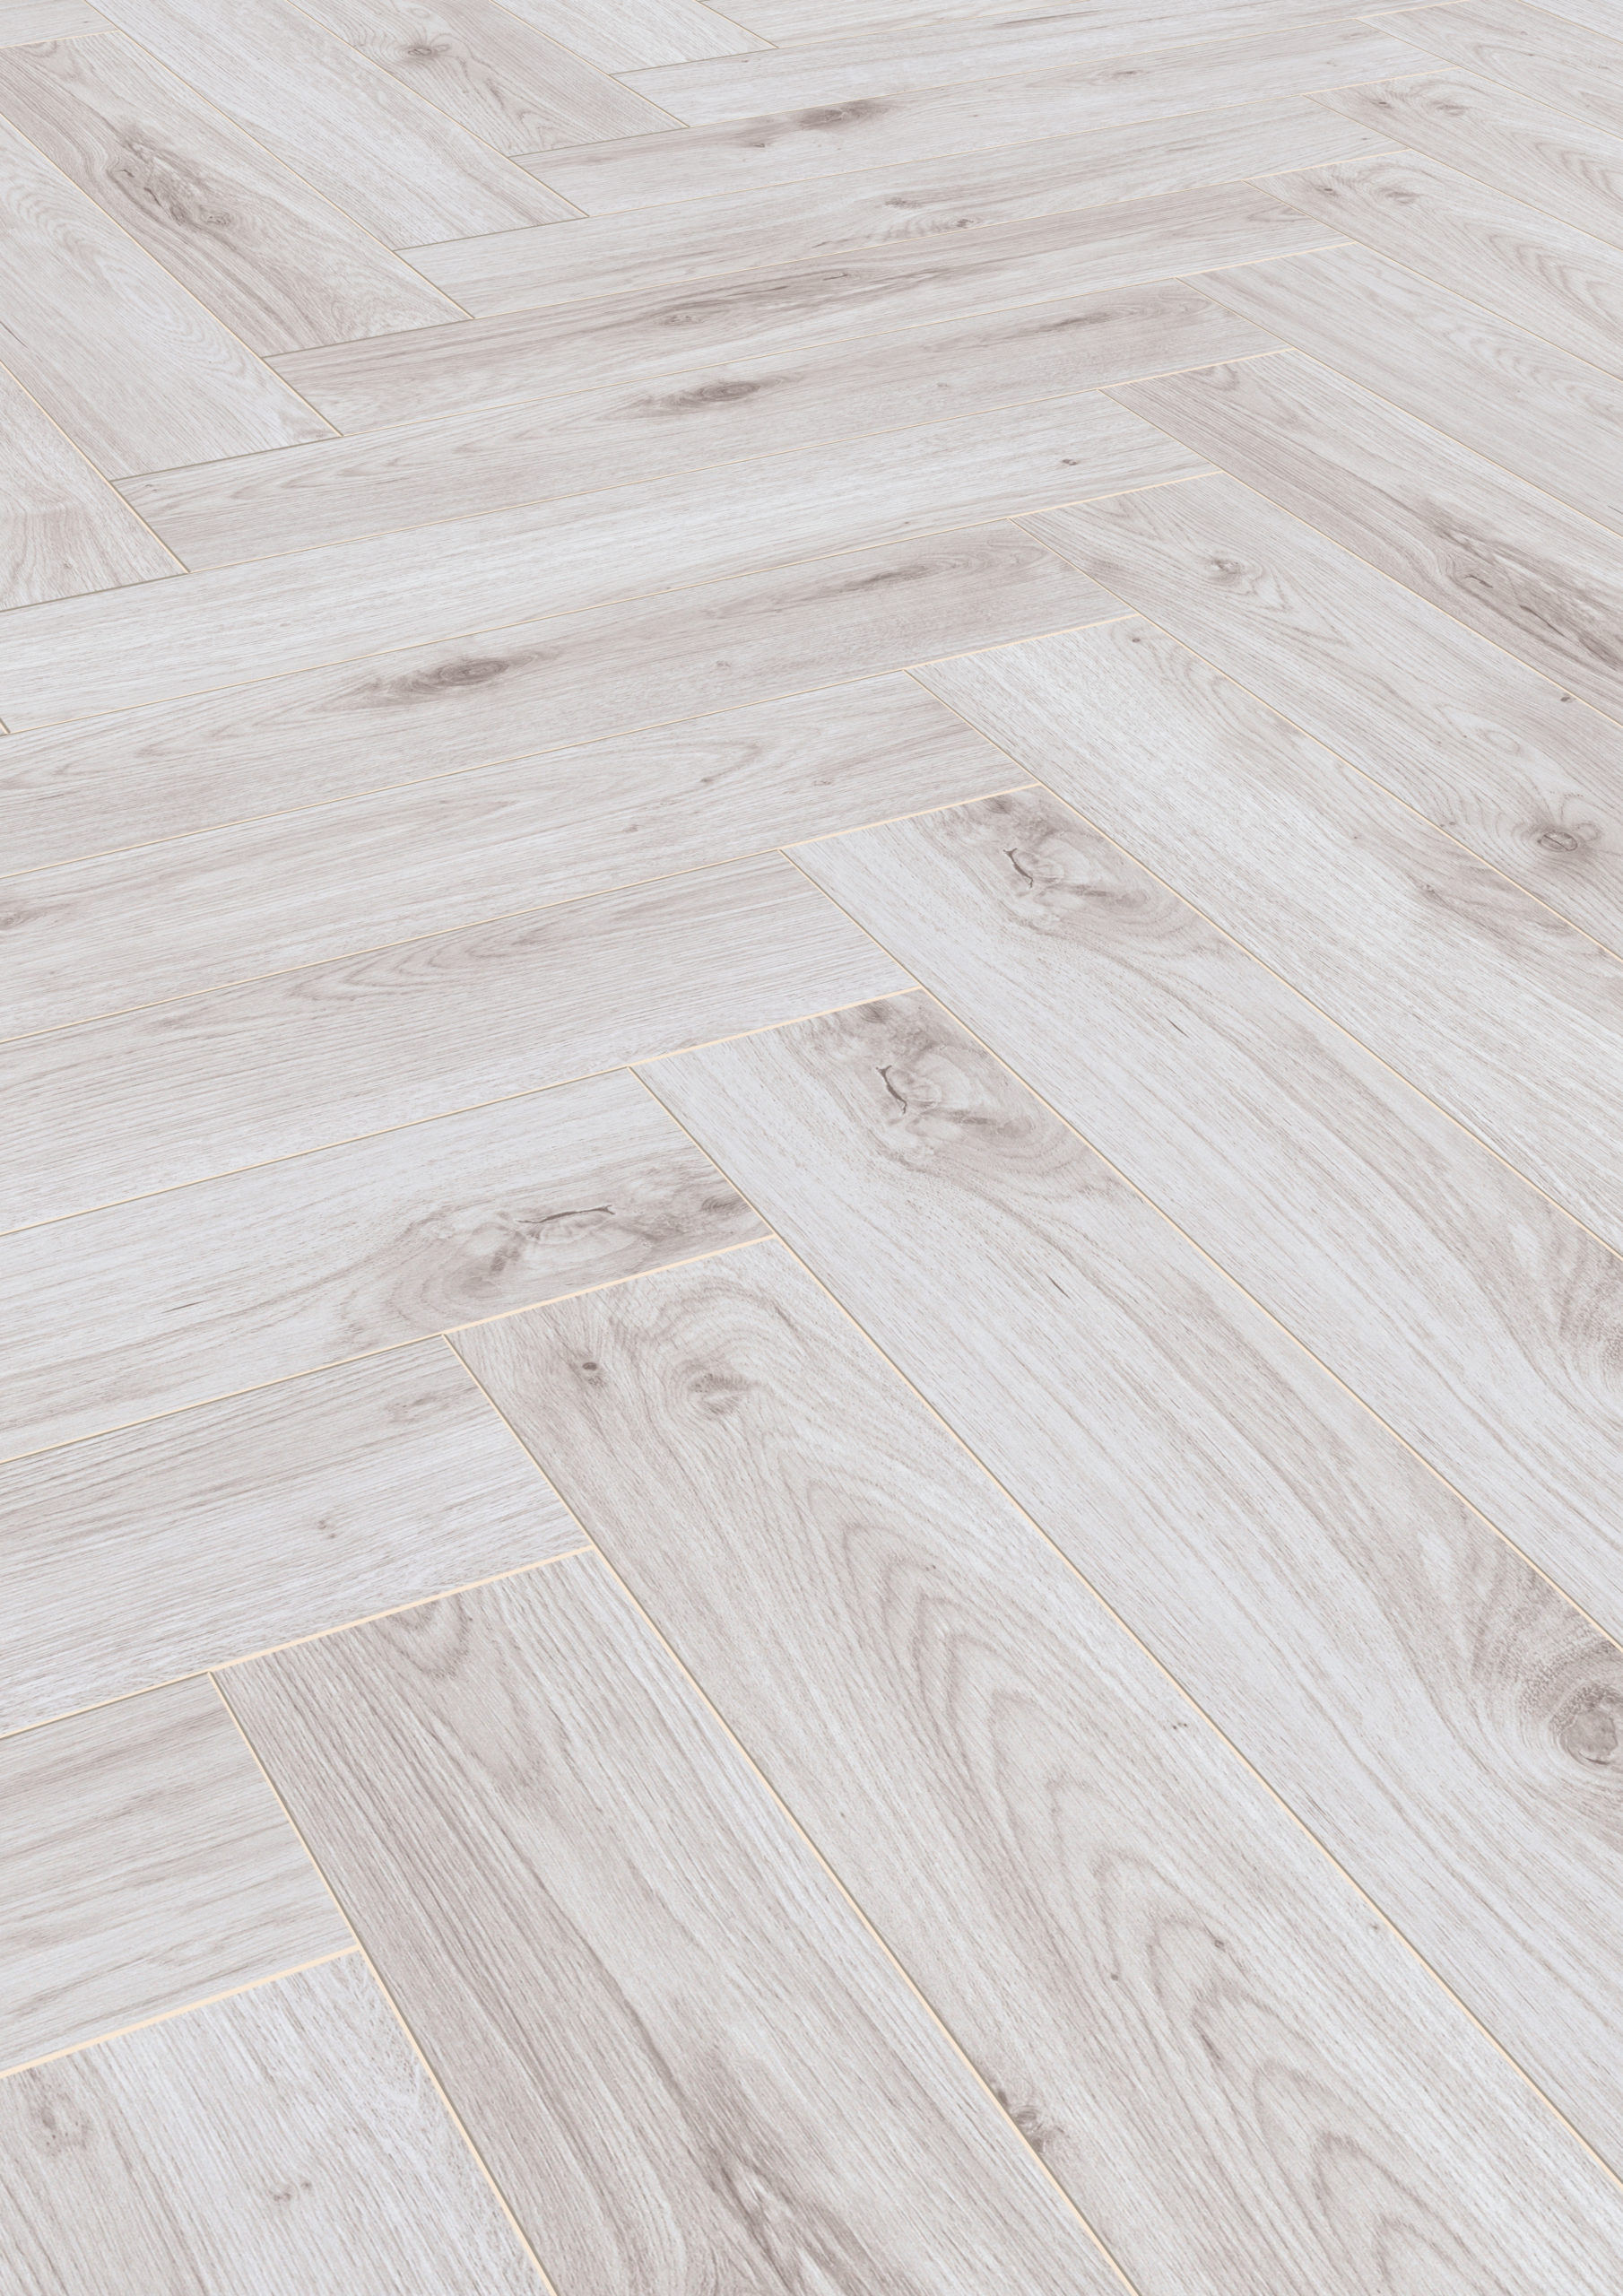 Vivant Vintage Herringbone 12mm White Oak 4V Laminate